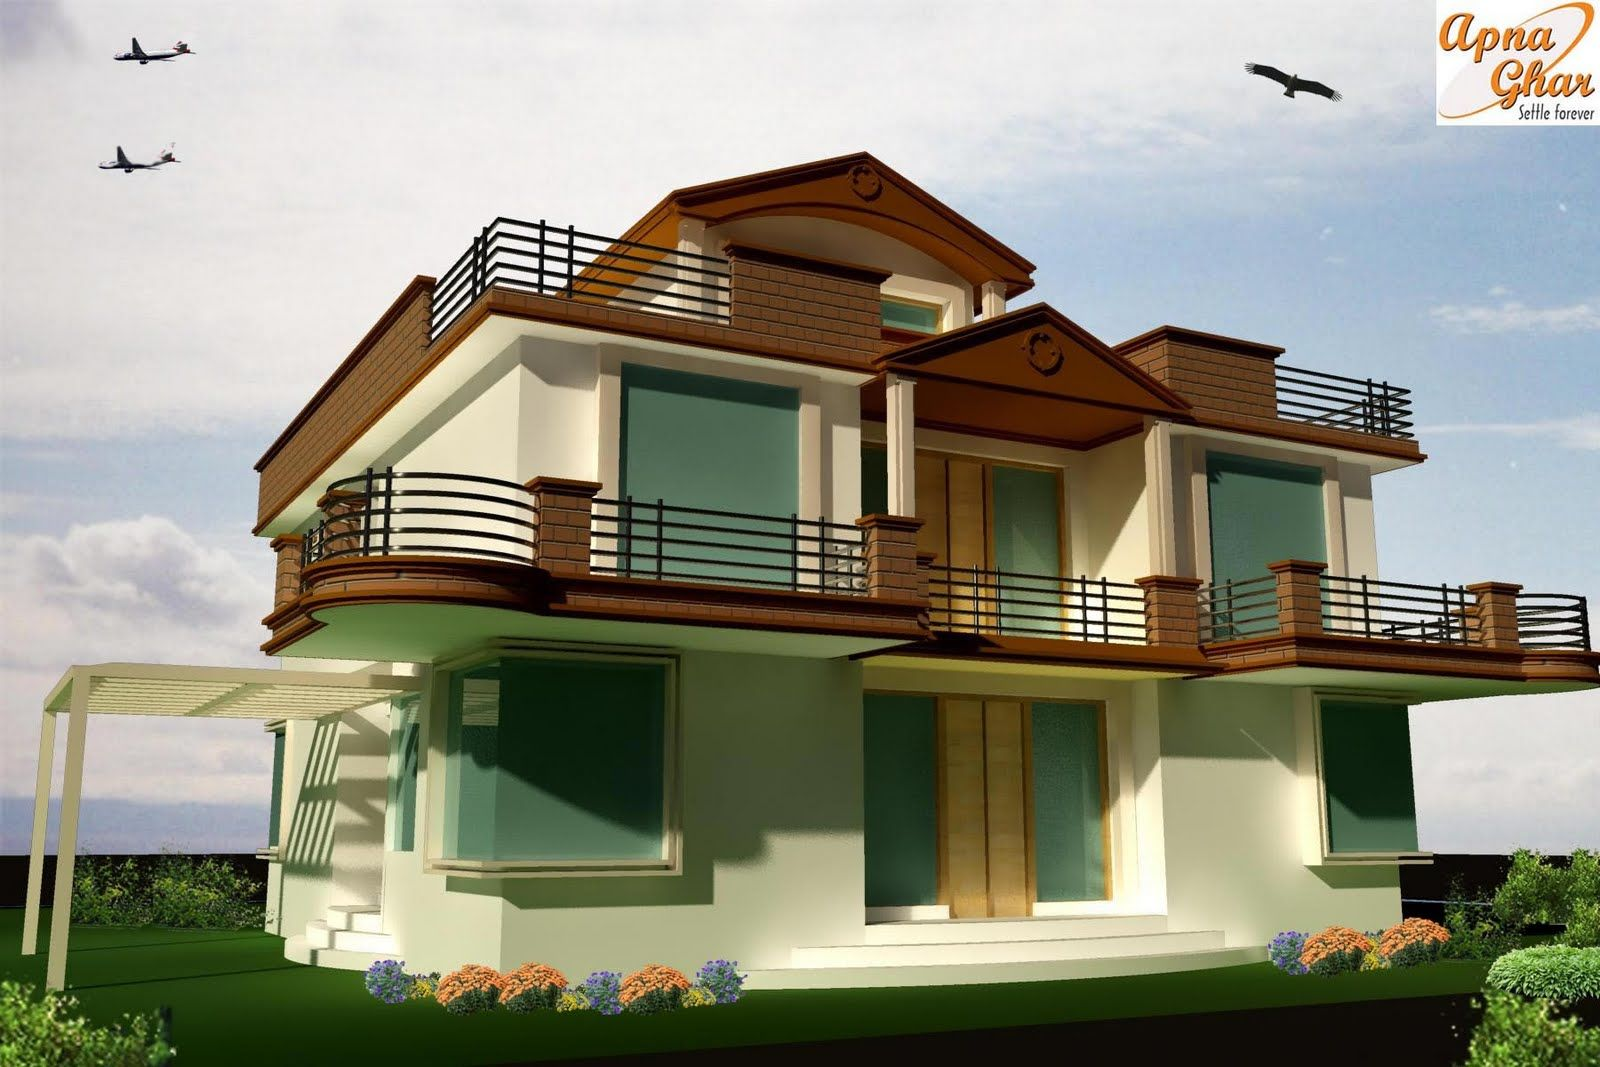 Architectural designs modern architectural house plans for Architecture design house plan